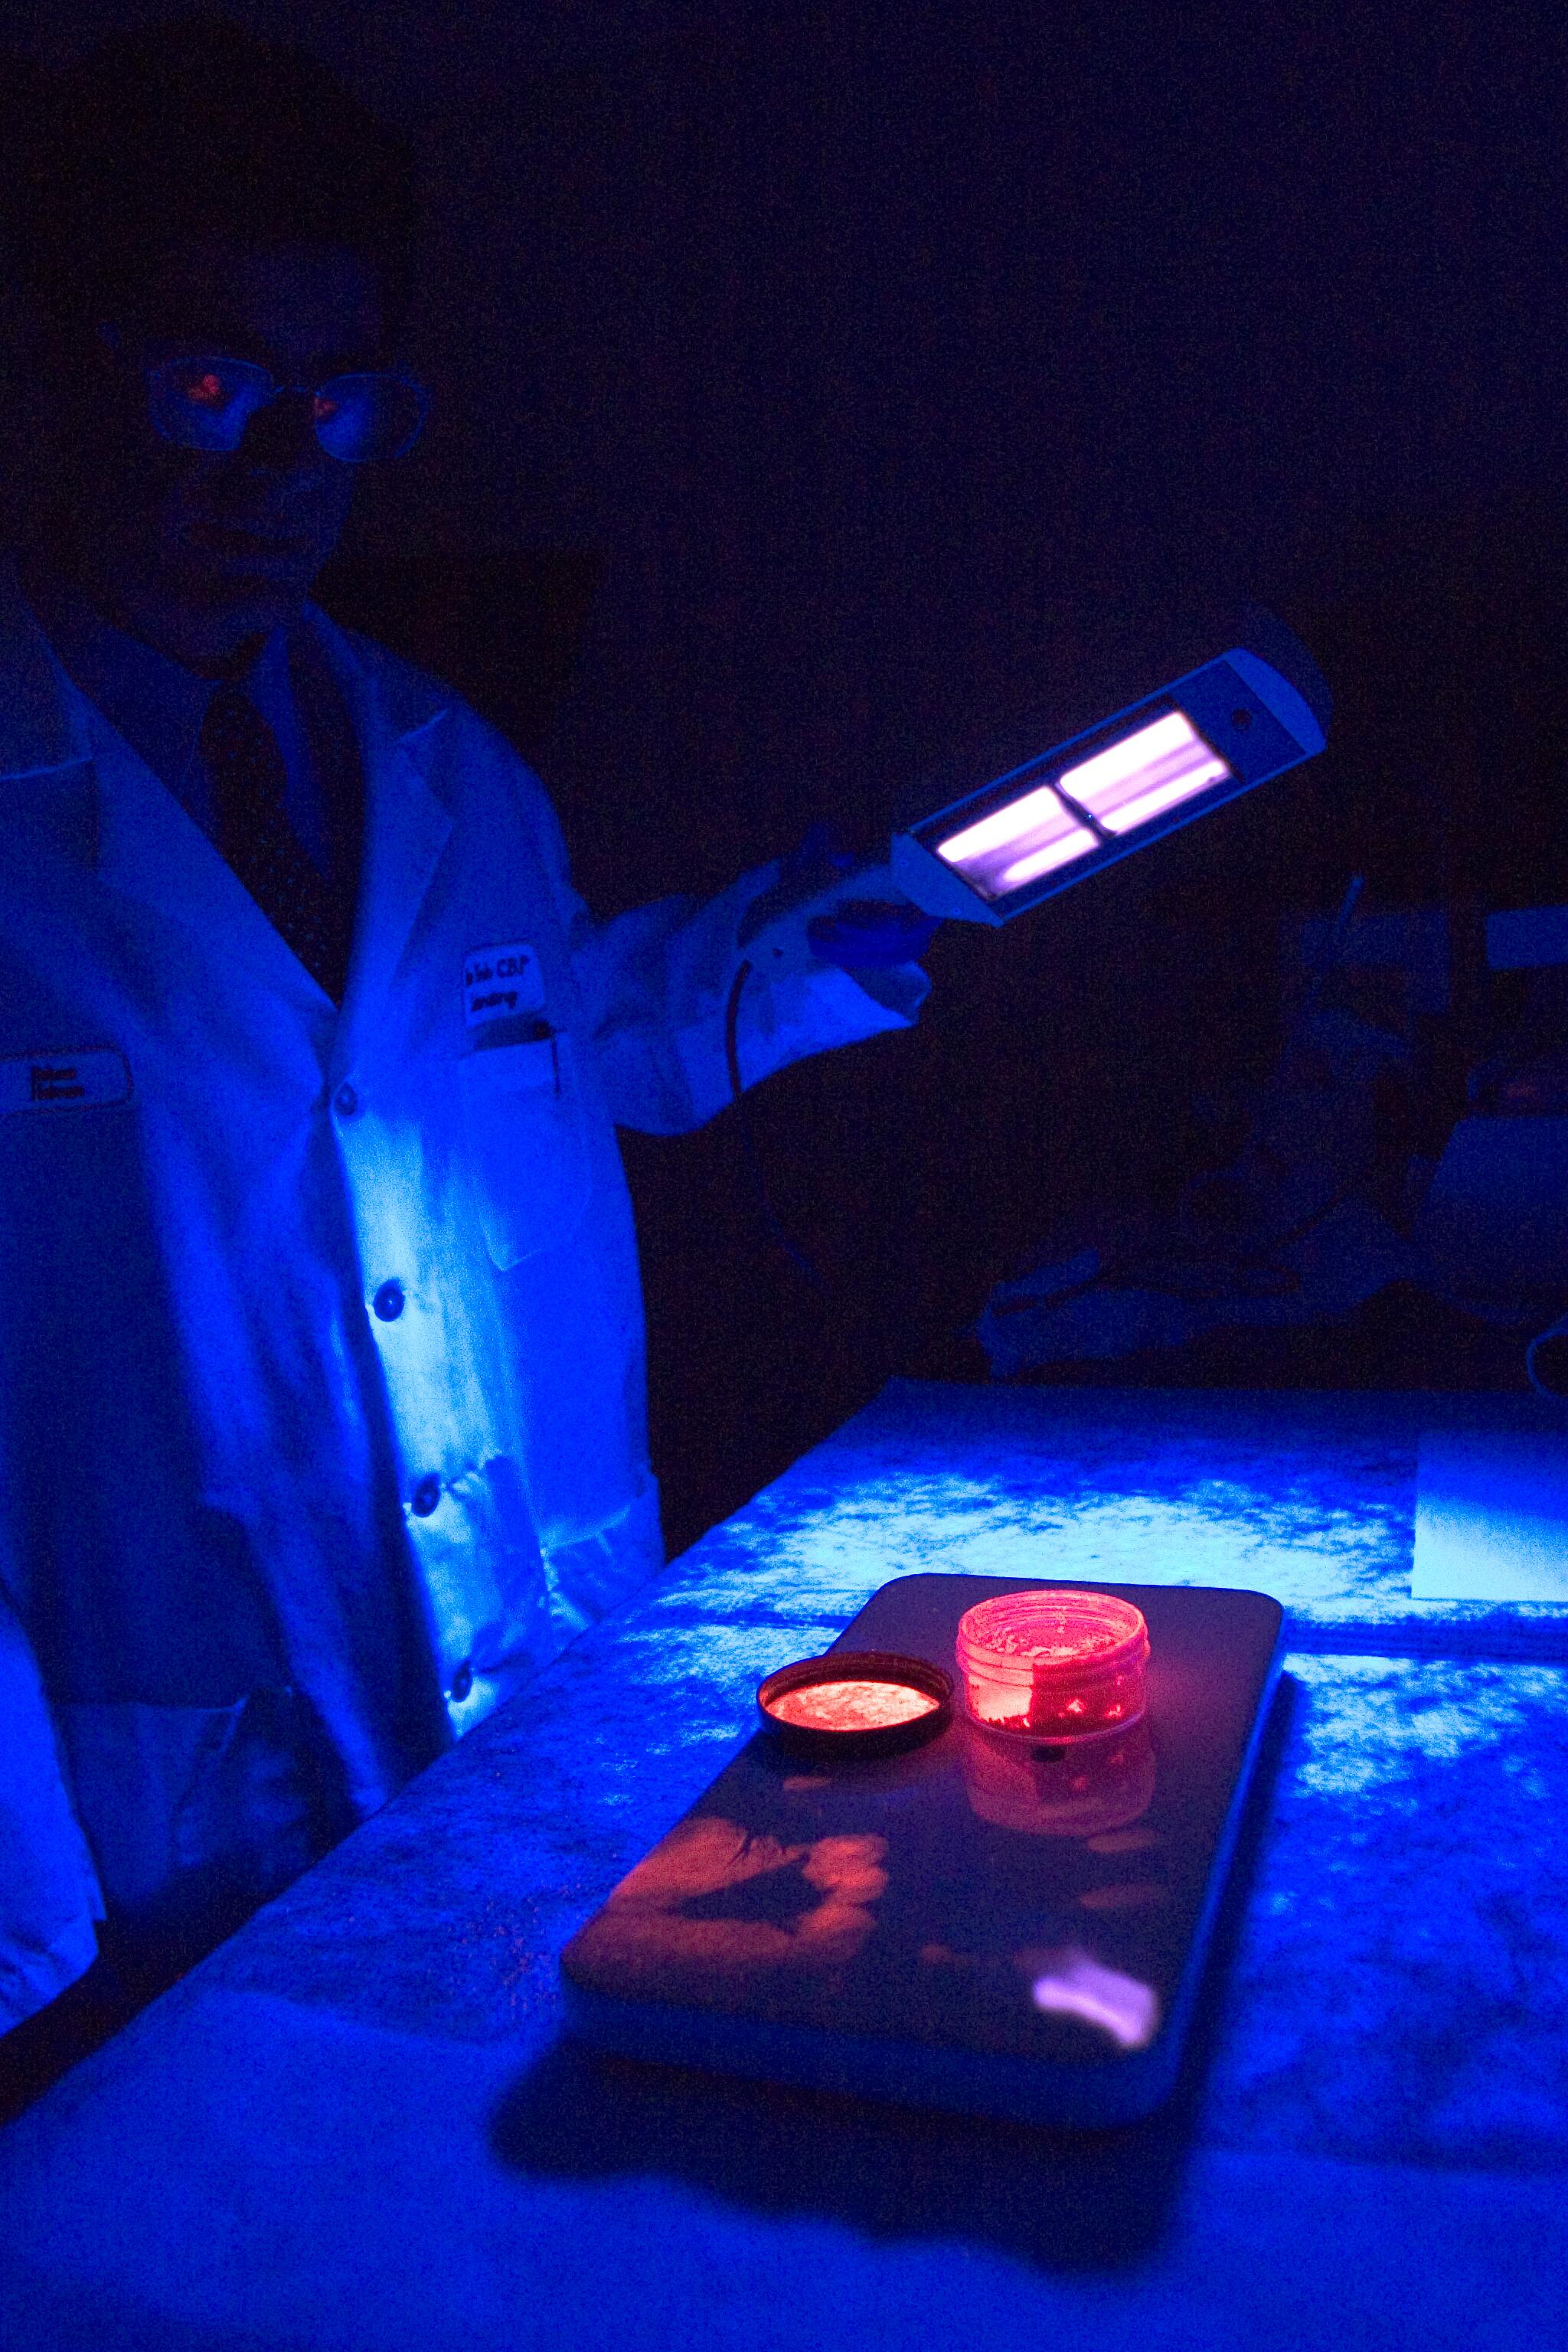 CBP Laboratory personnel apply ultraviolet light to see things not ordinarily visible to the naked eye.